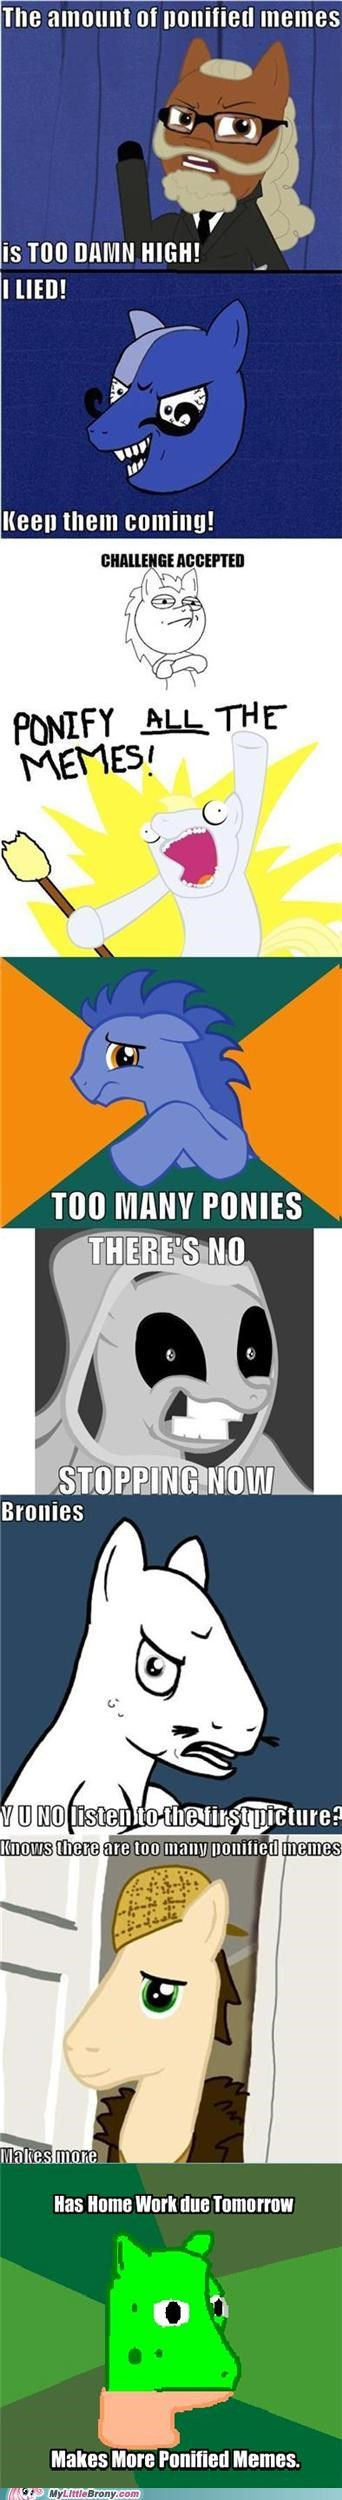 Bronies good job guys meme Memes ponification yo pony - 5360959232